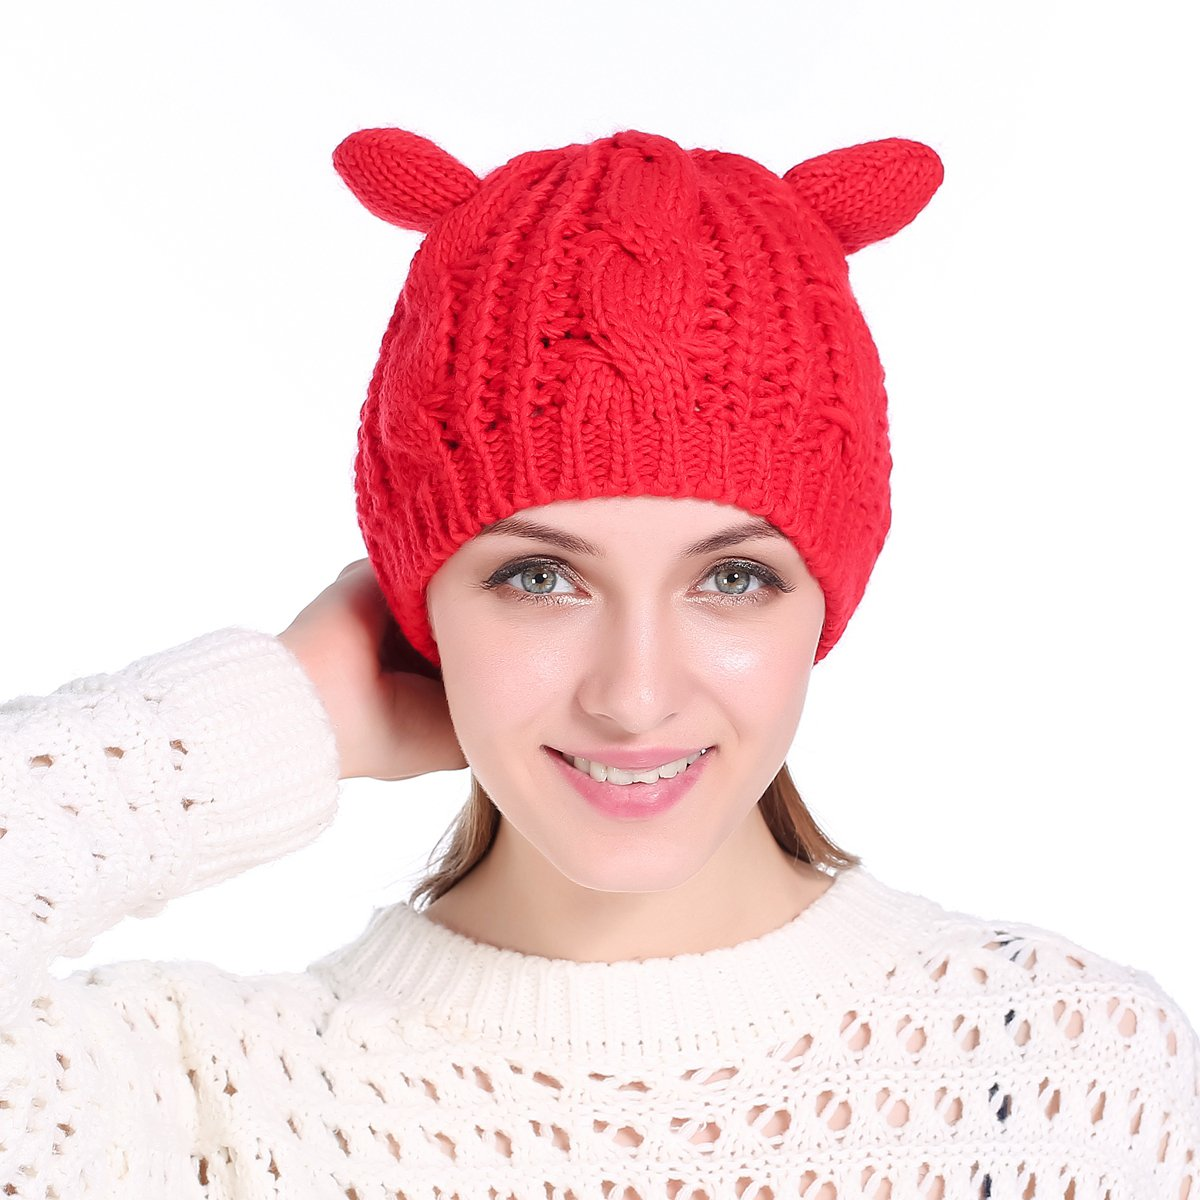 e97e97849ba Amazon.com  Cat Ear Beanie Knit Hat for Women Lovely Teens Warm Crochet Braided  Ski Caps Black  Clothing